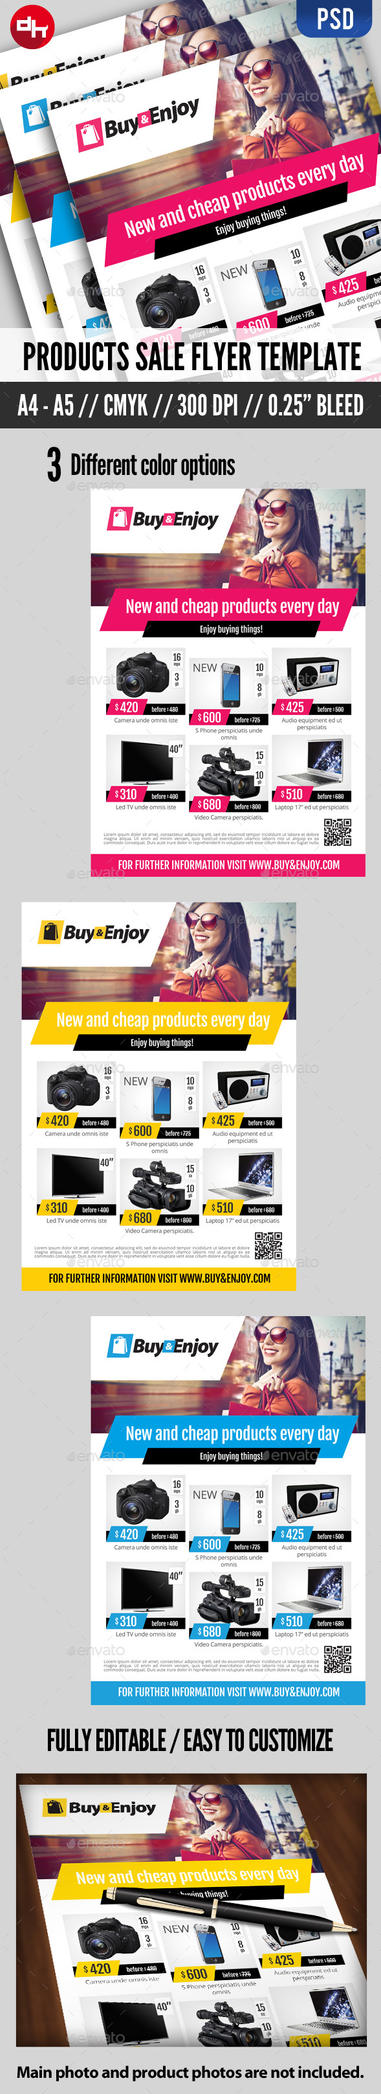 Product Sale - Flyer Template by doghead